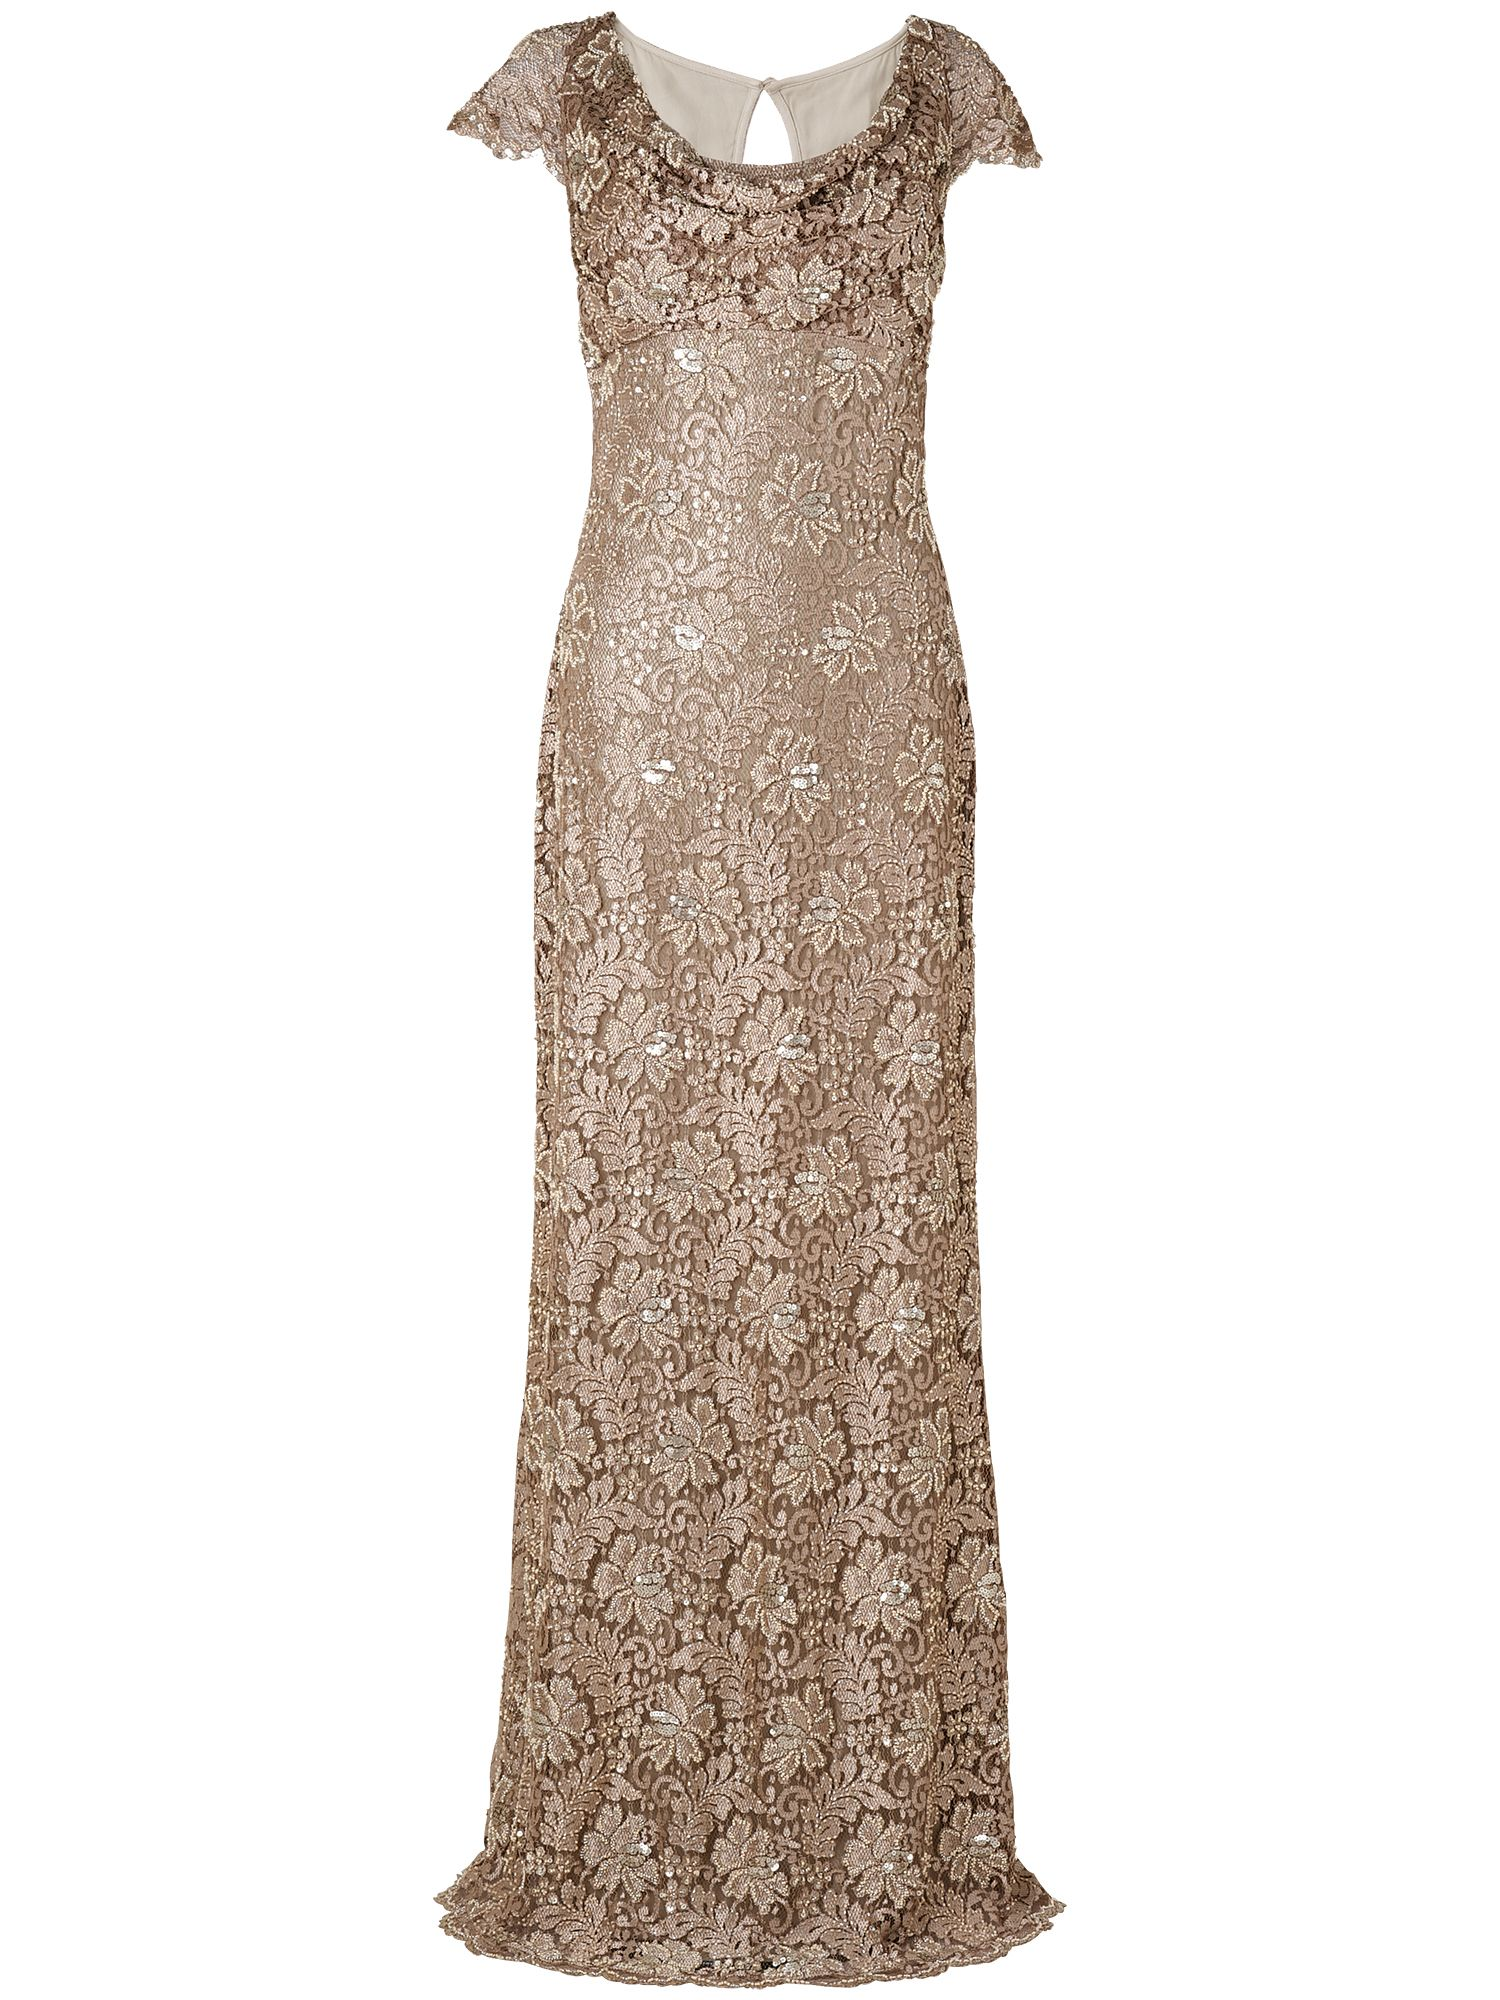 Pippa embellished lace dress